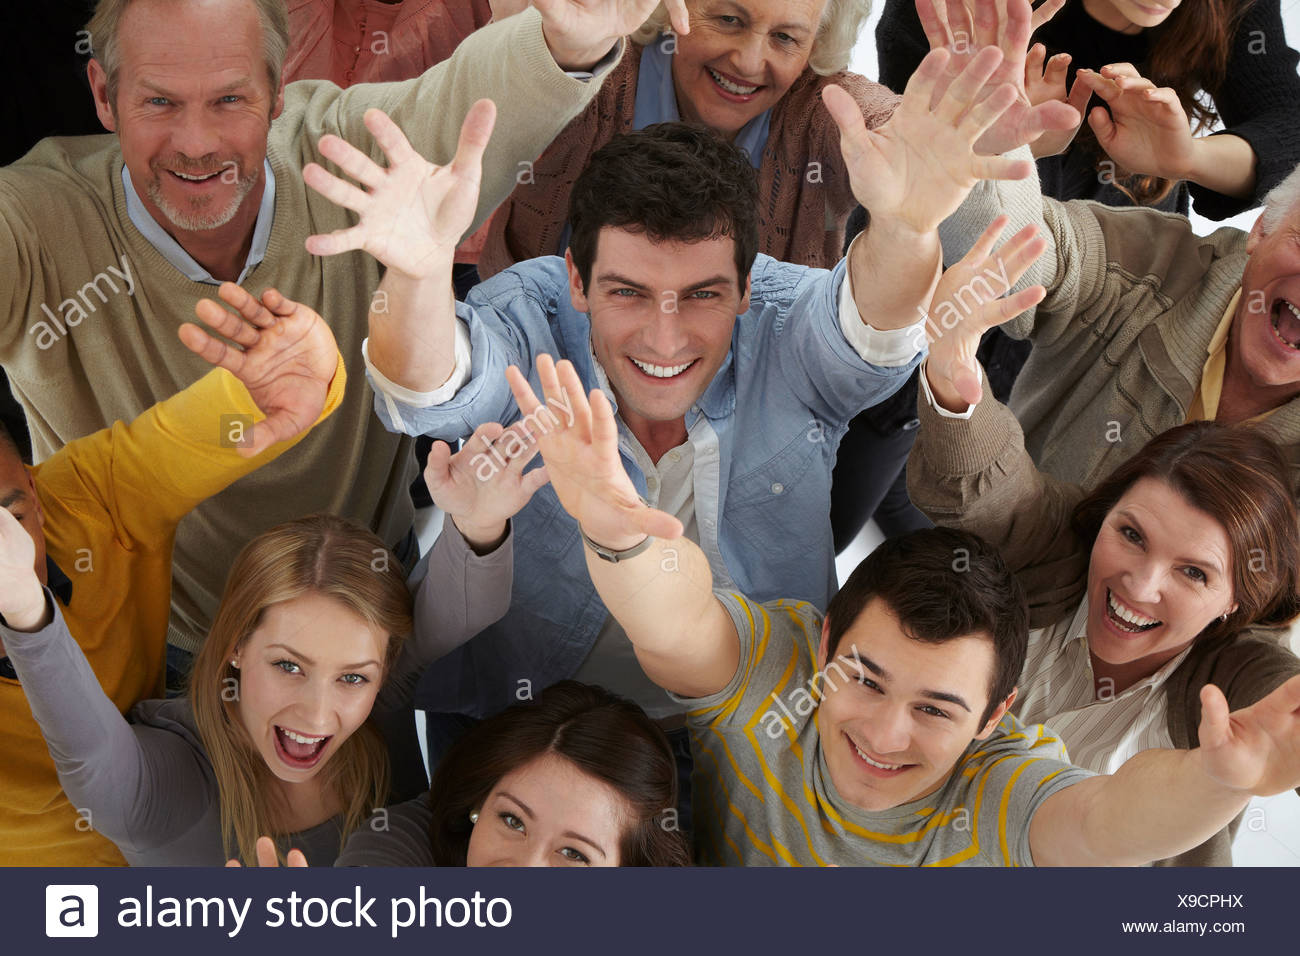 Group of people with arms raised, high angle - Stock Image